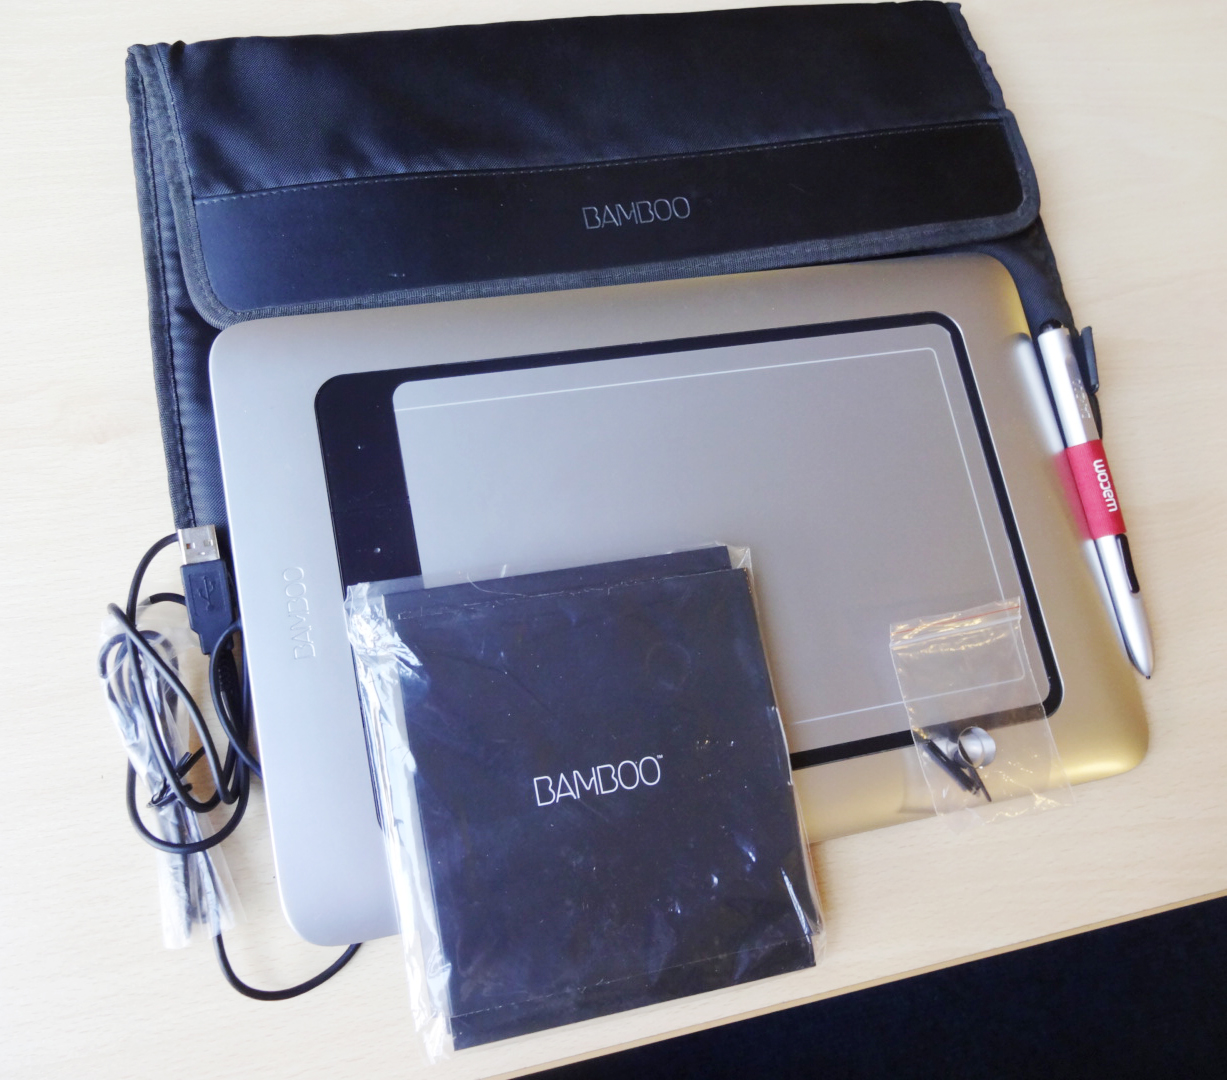 How to install wacom bamboo tablet without cd